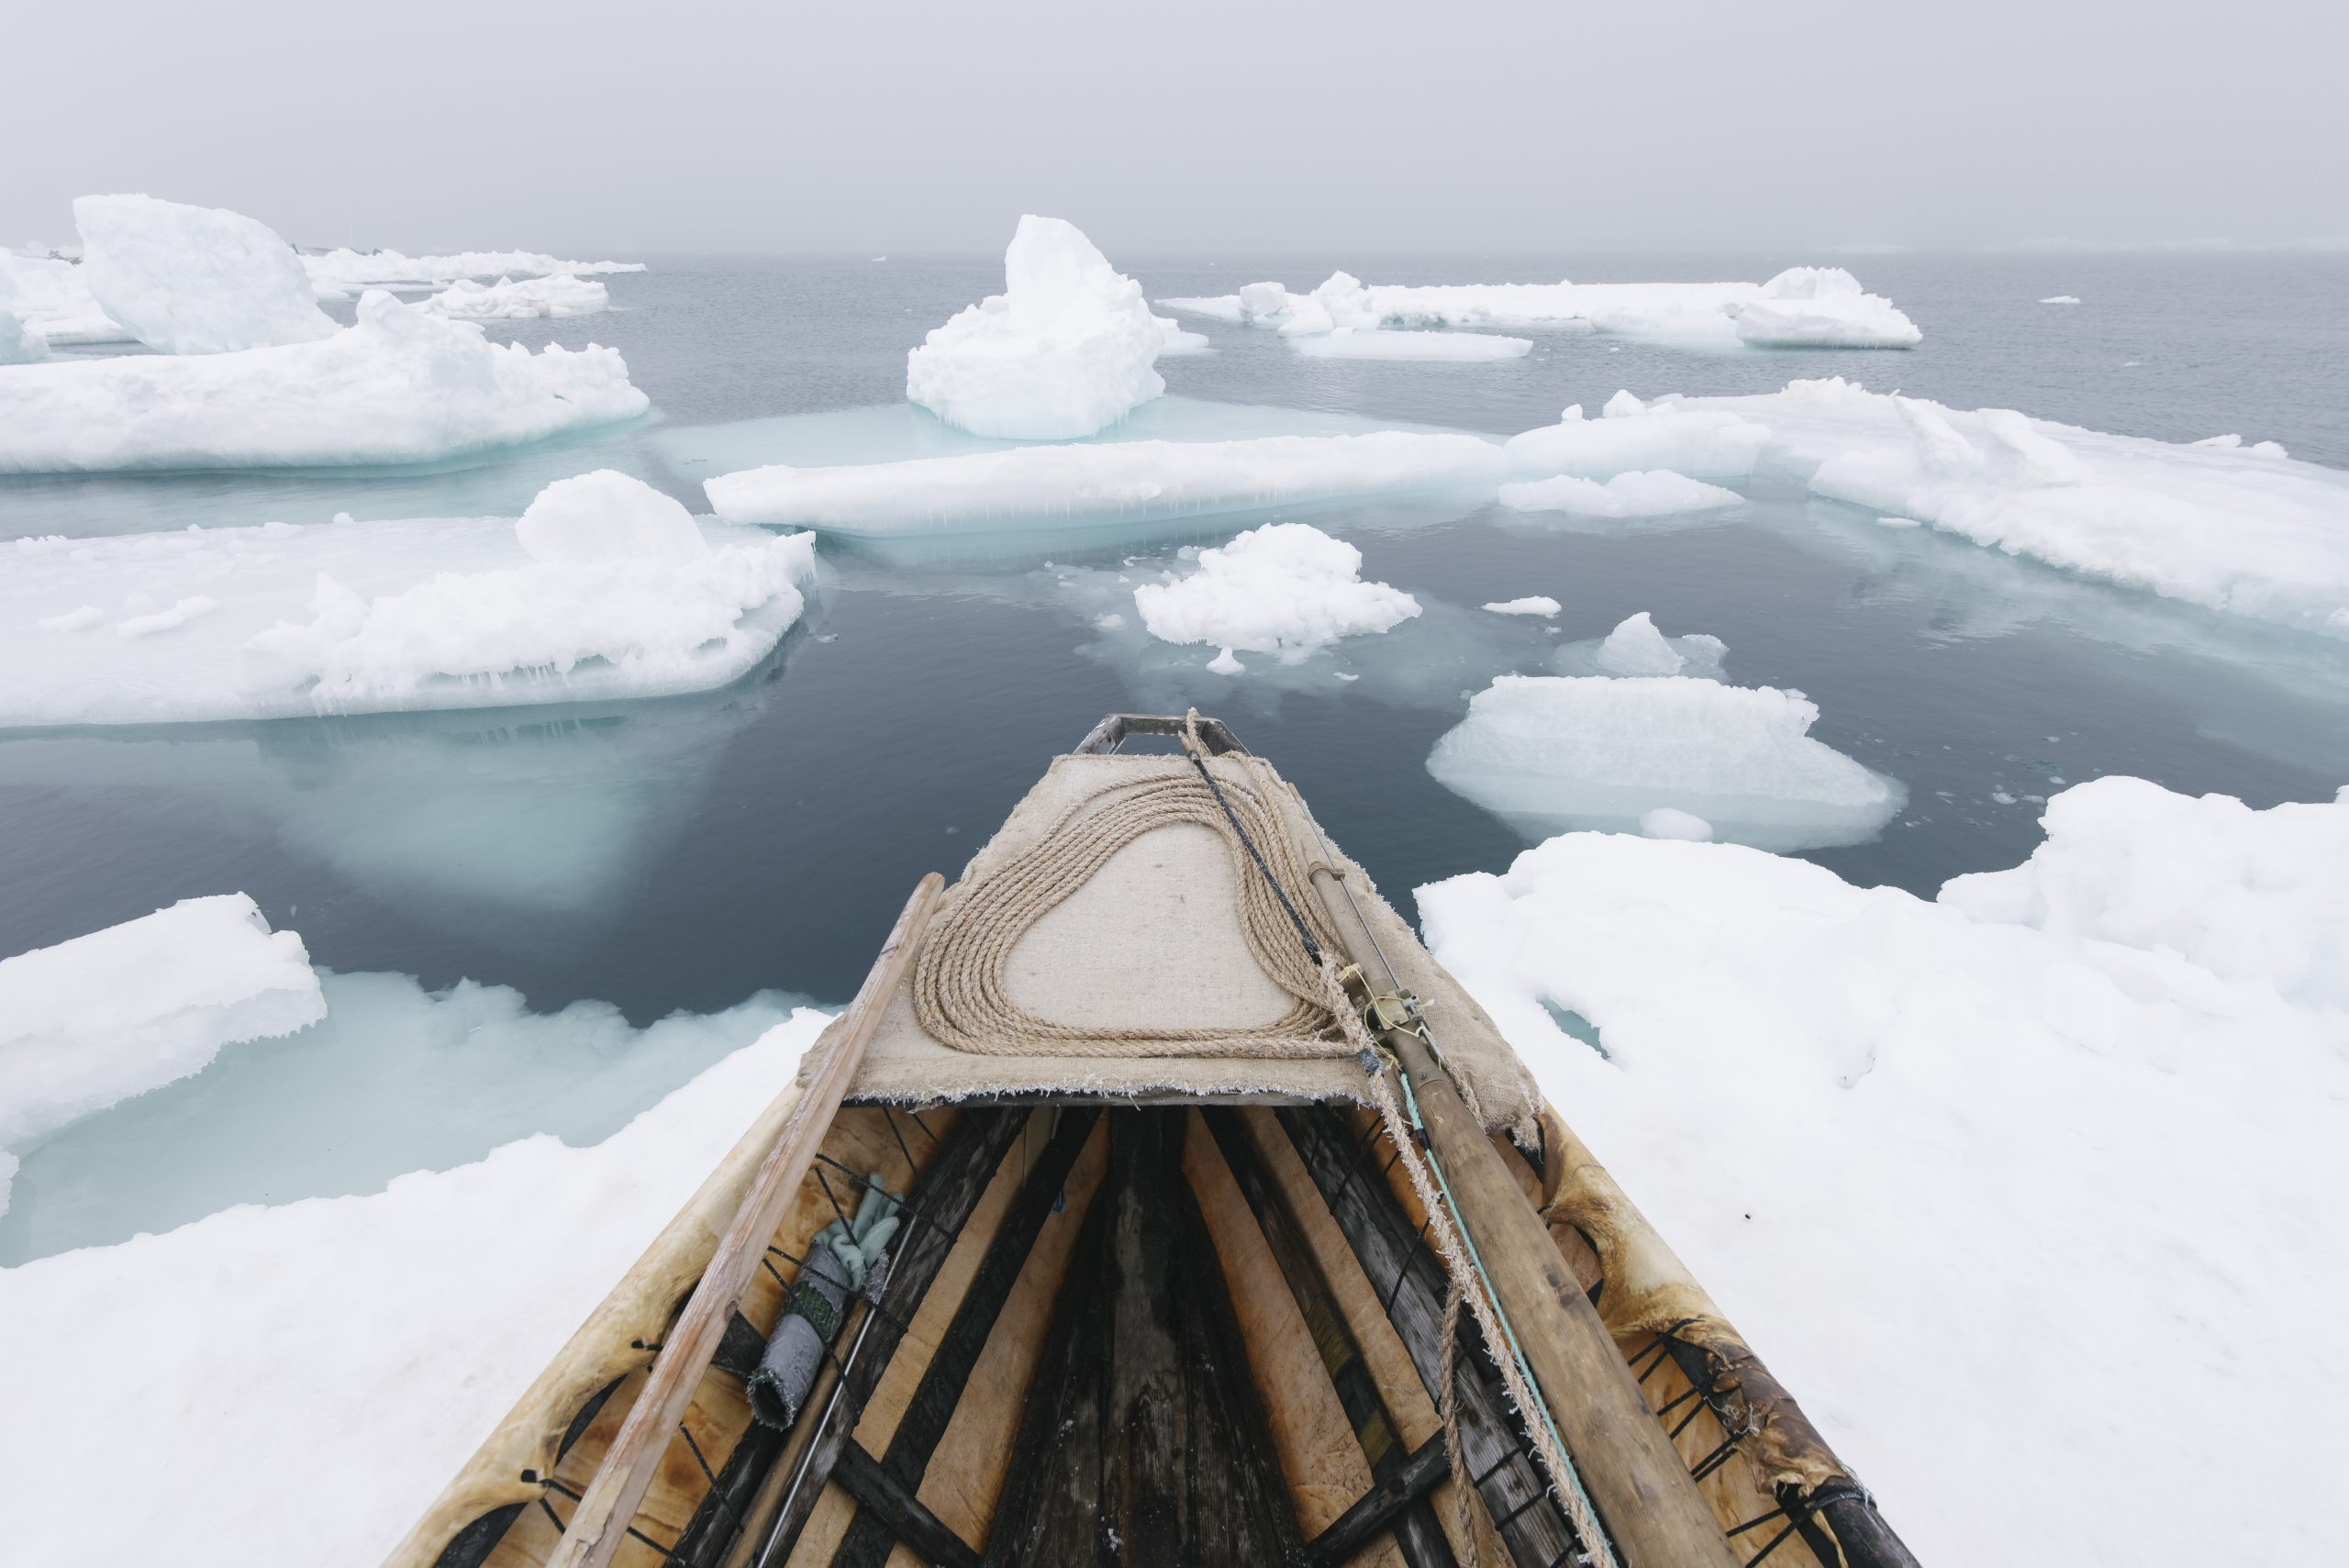 A photograph of a boat in the Arctic